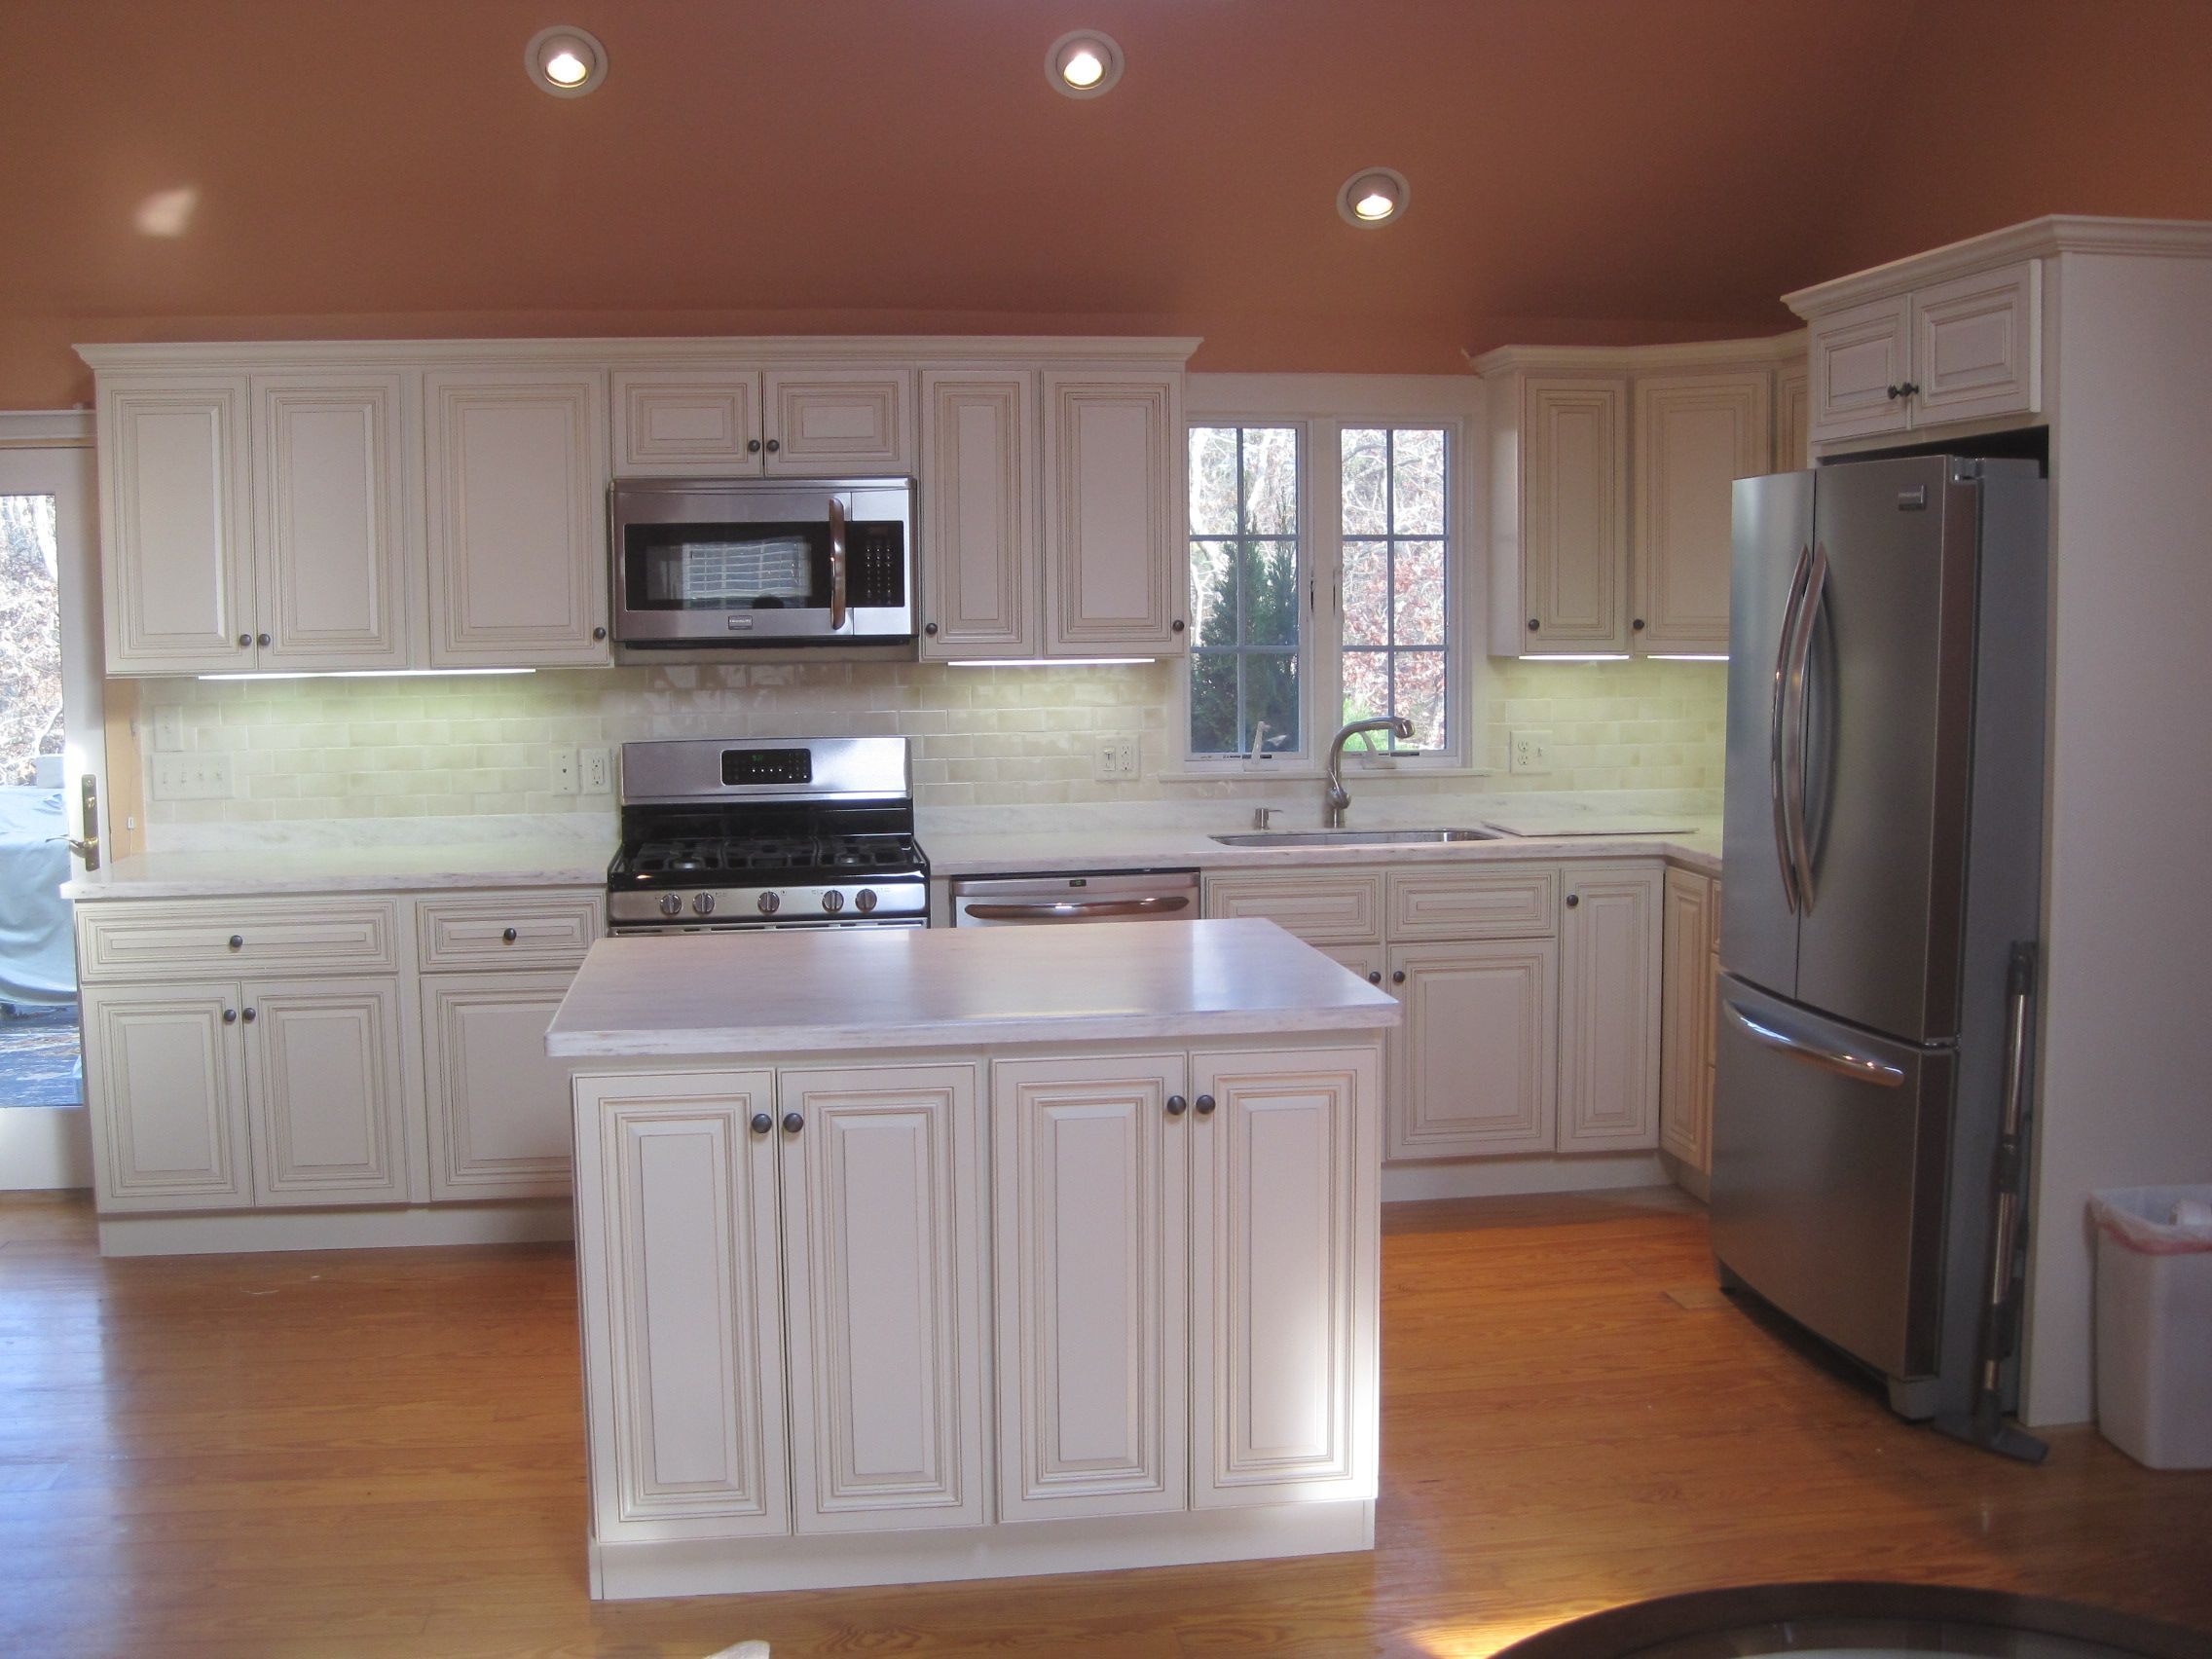 Corian Witch Hazel With Off White Island Google Search Kitchen Cabinets Prices Kitchen Remodel Kitchen Cabinets